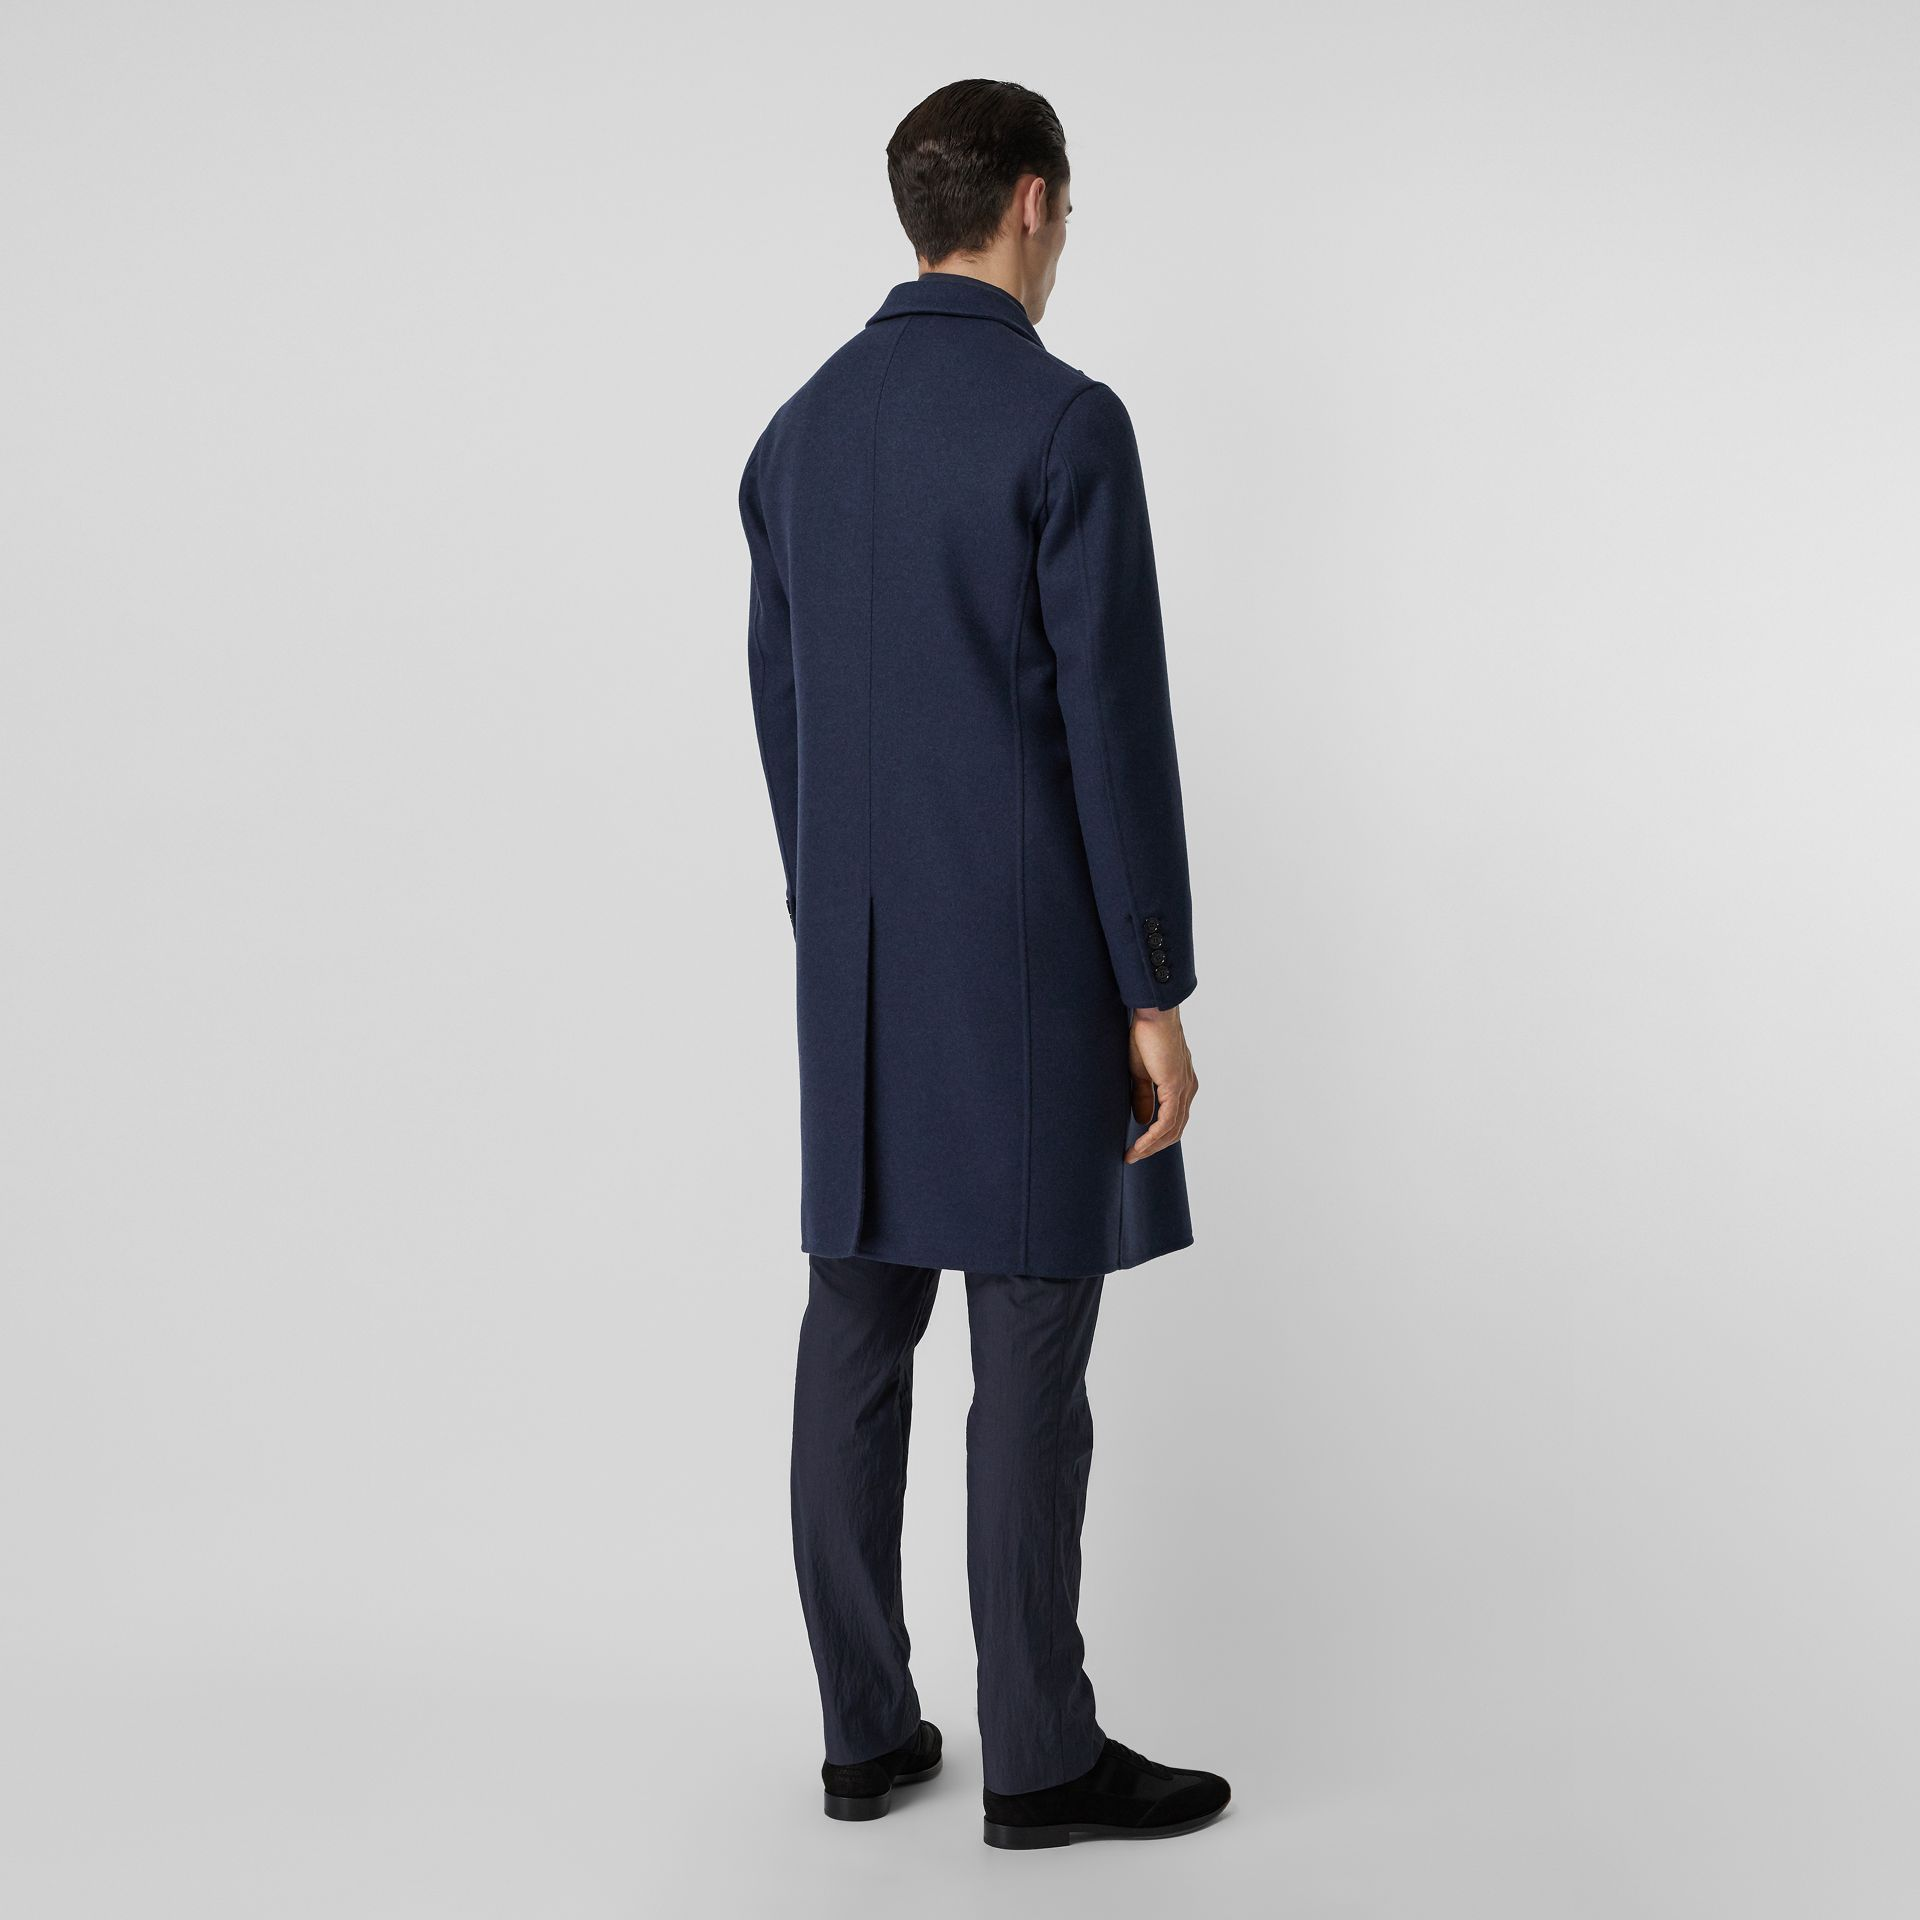 Double-faced Wool Cashmere Tailored Coat in Steel Blue Melange - Men | Burberry Canada - gallery image 2